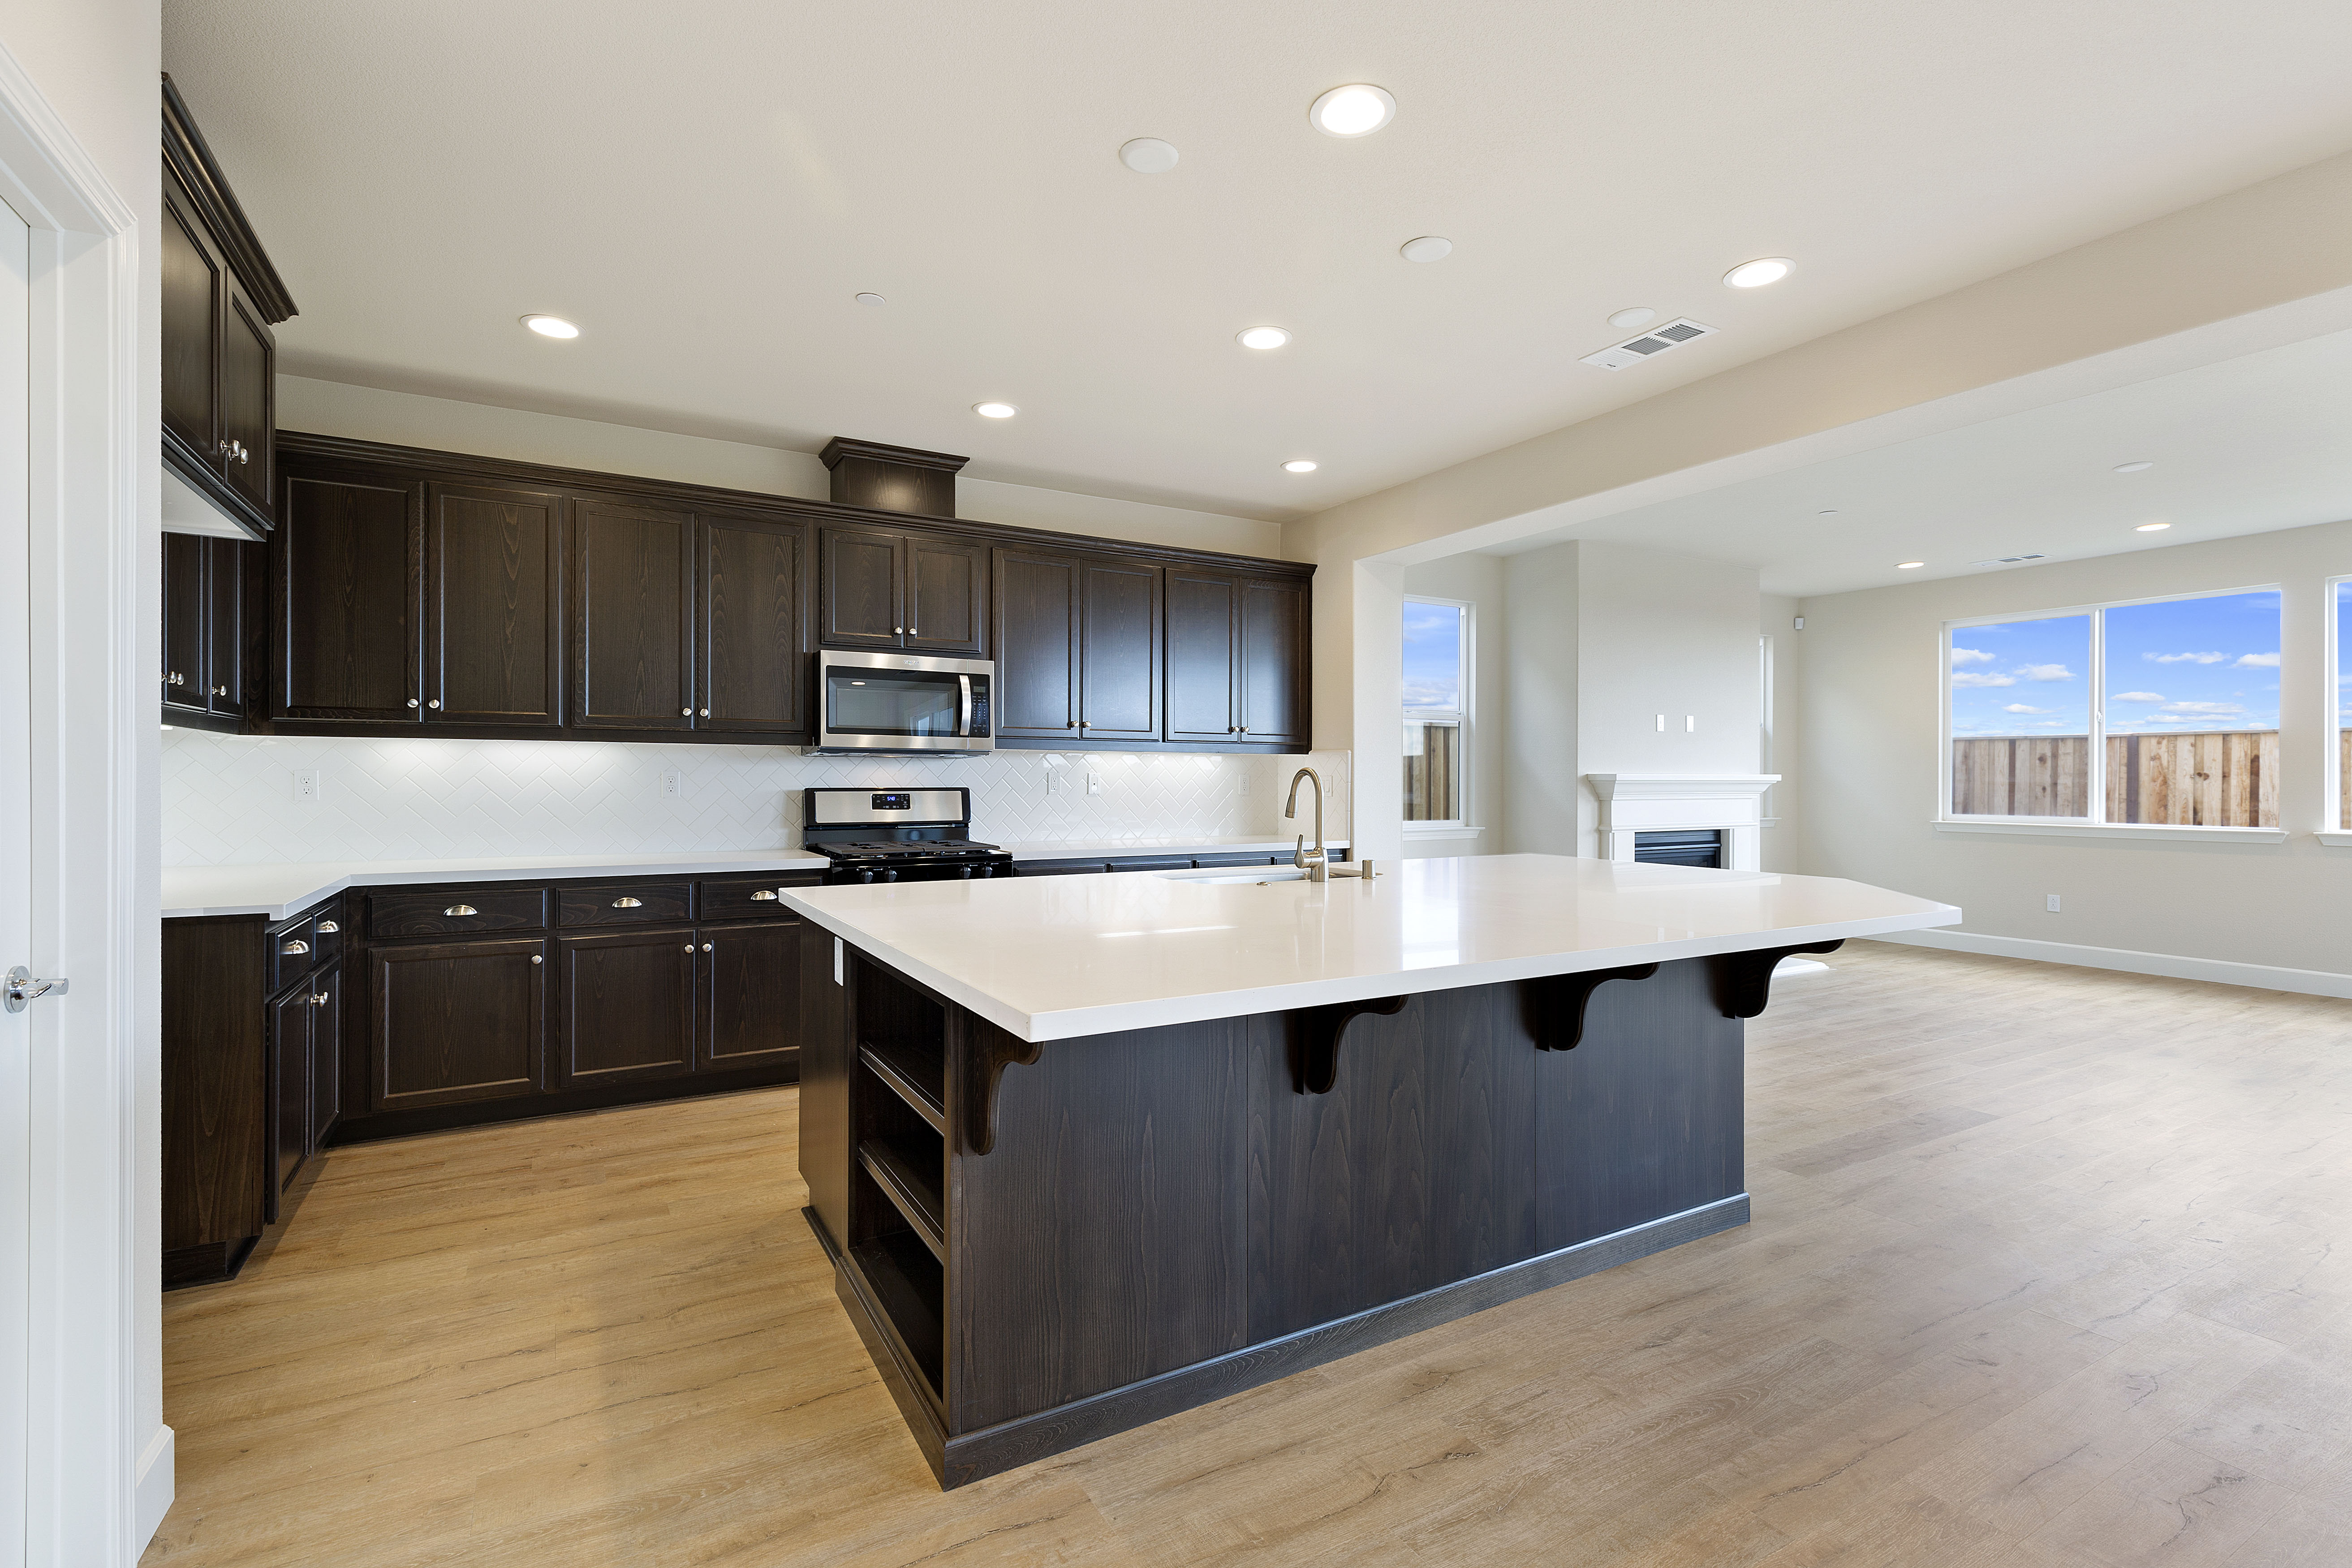 Cabinets and countertops   Elite Builder Services